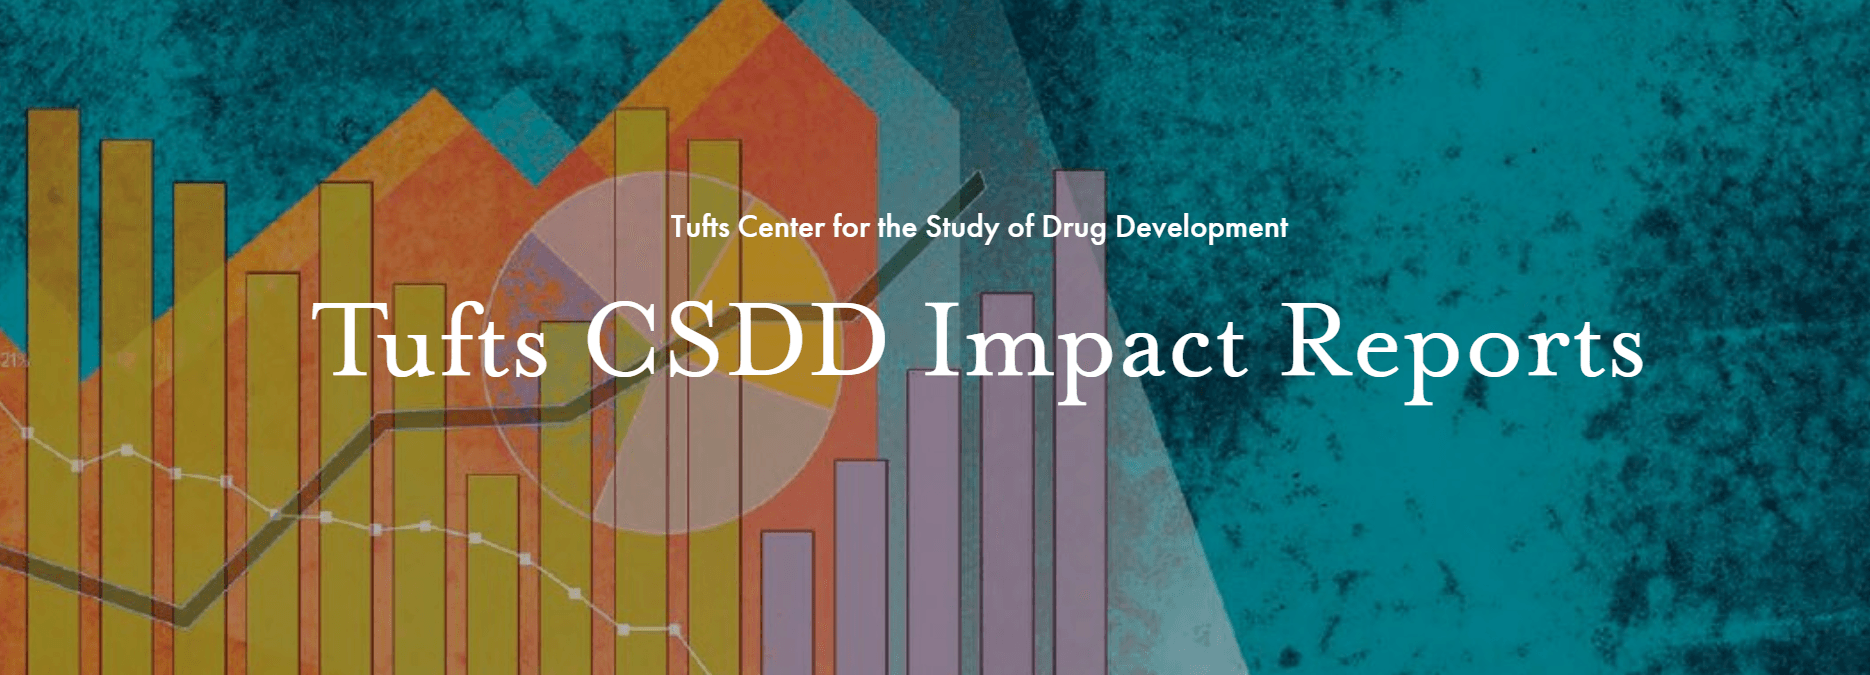 Tufs Study: Cancer Drugs Now Account for 27% of all New Drug